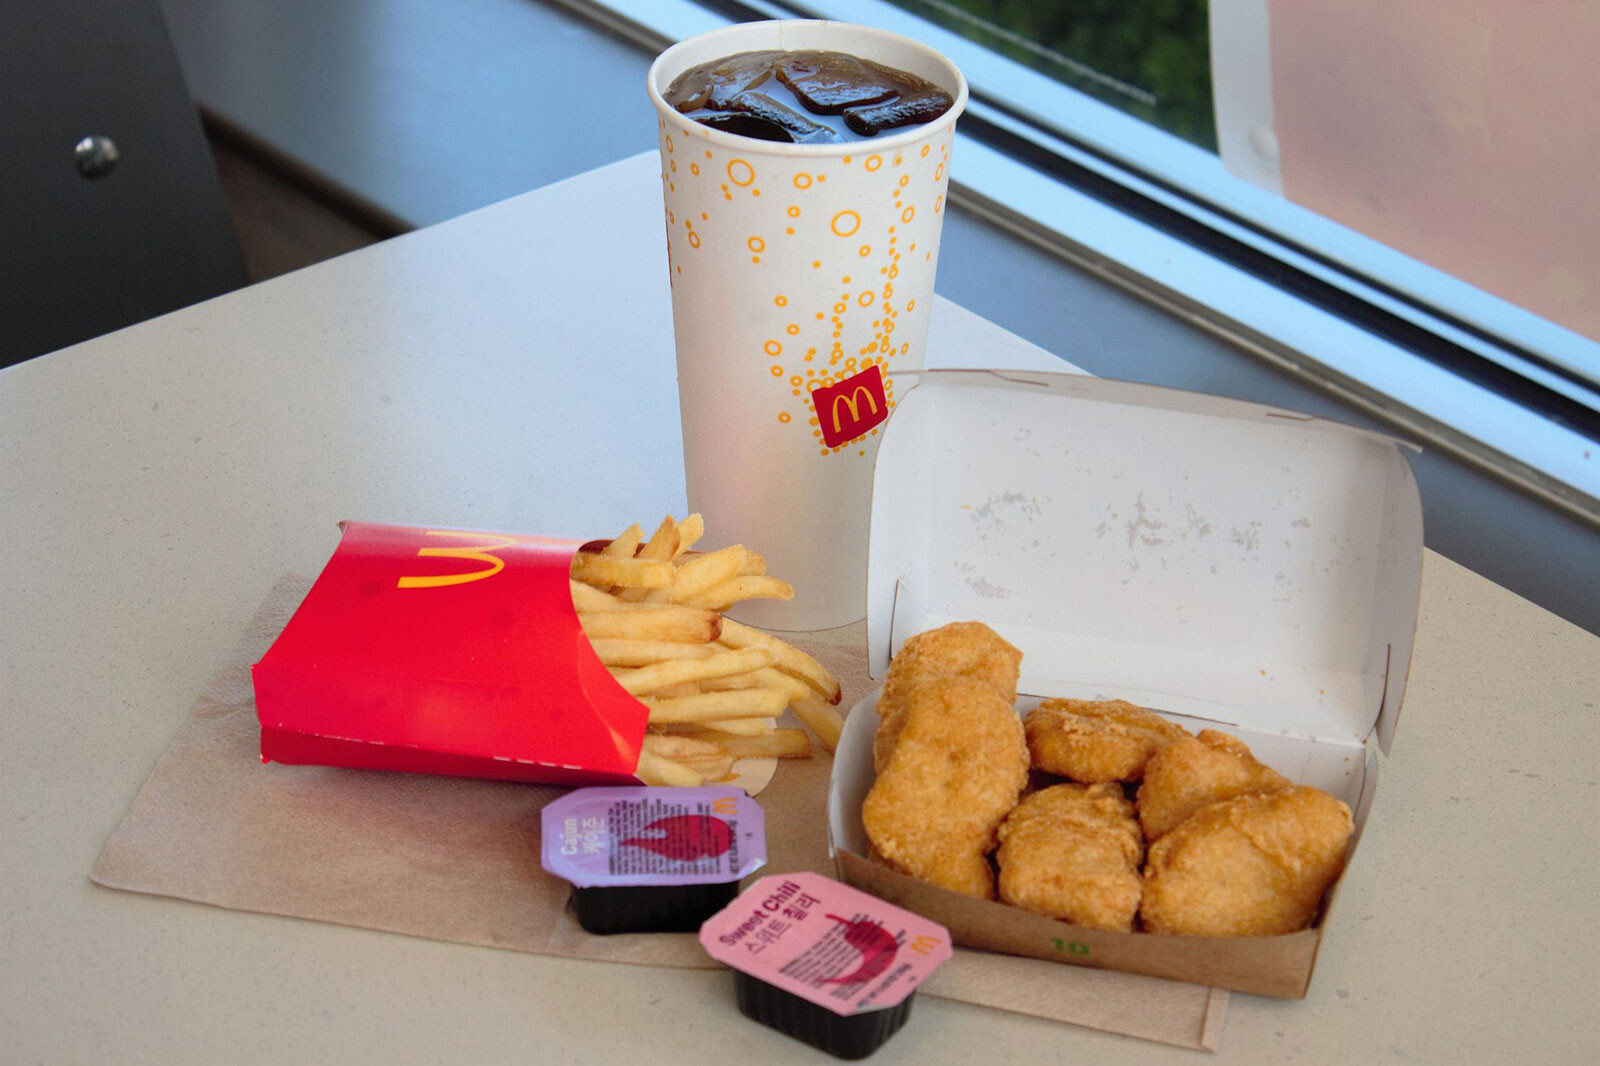 Chicken sandwich and BTS meal helped boost McDonald's sales